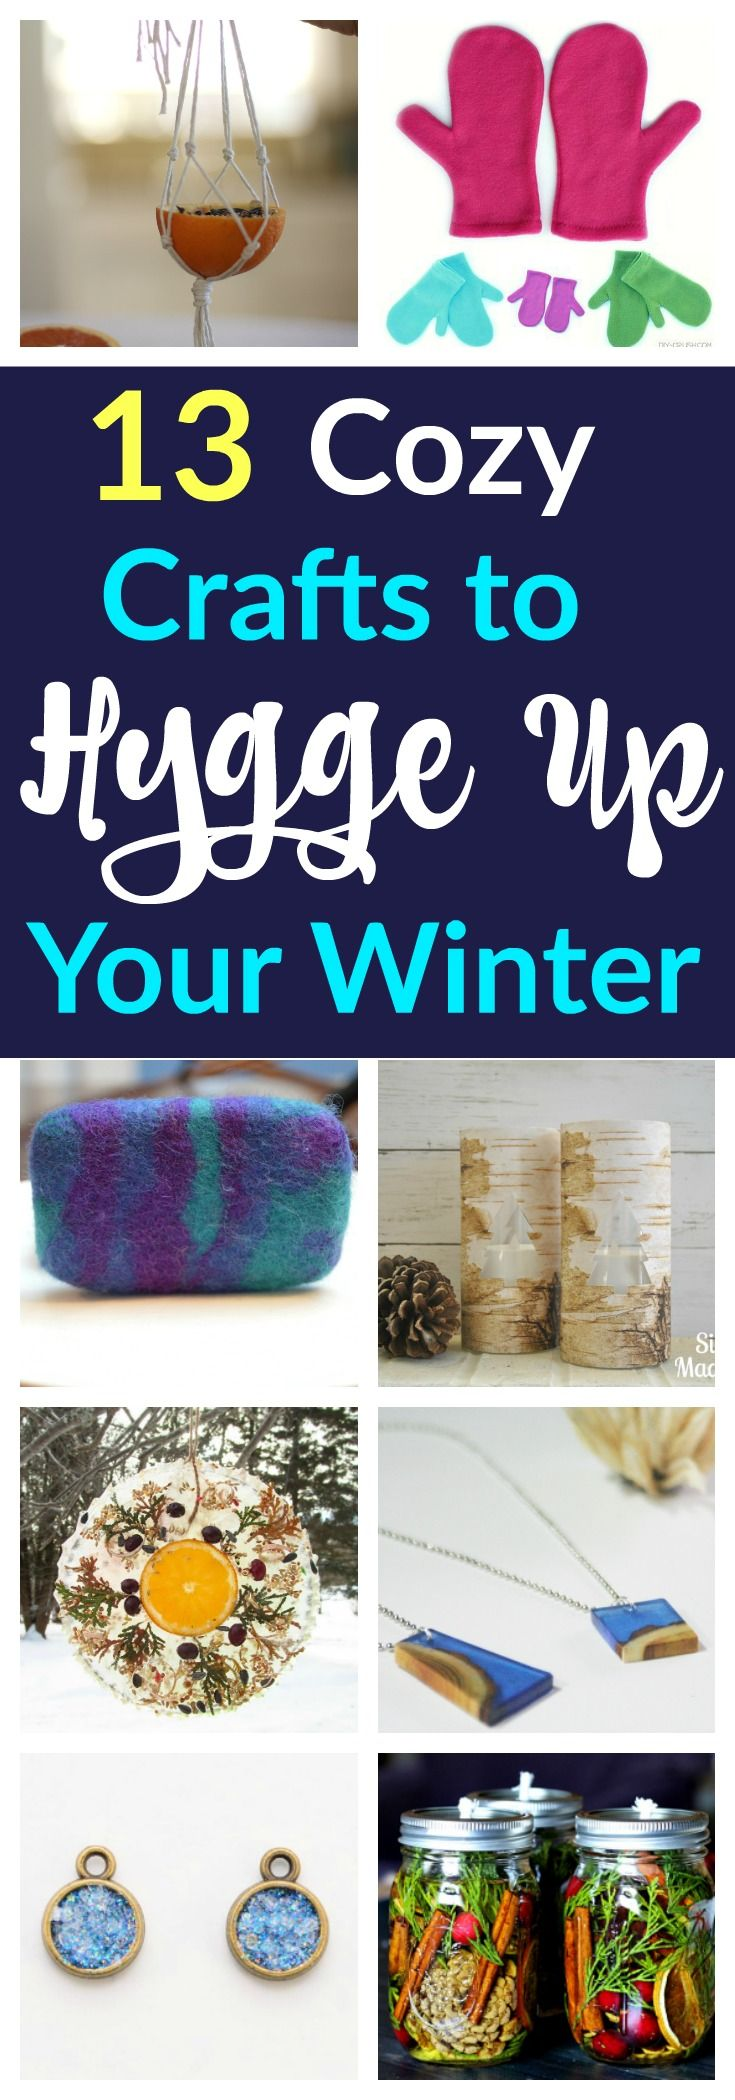 47++ Winter crafts for adults to sell information